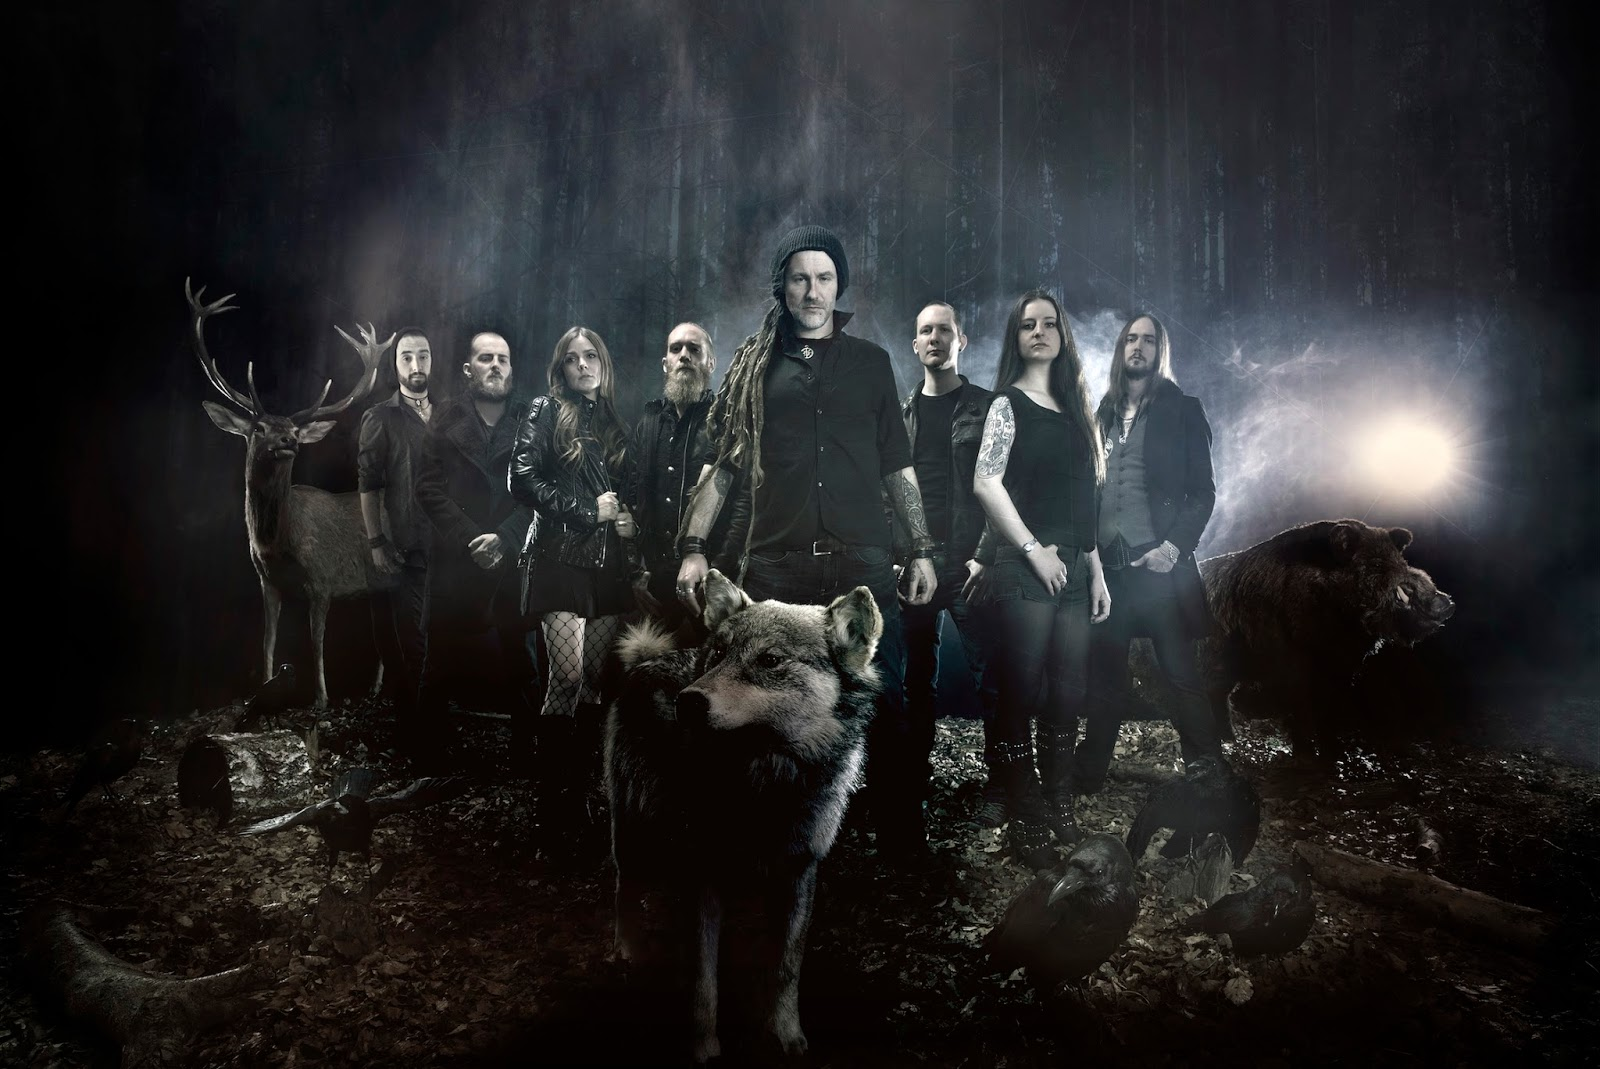 Metal band Eluveitie are coming to Singapore this May!